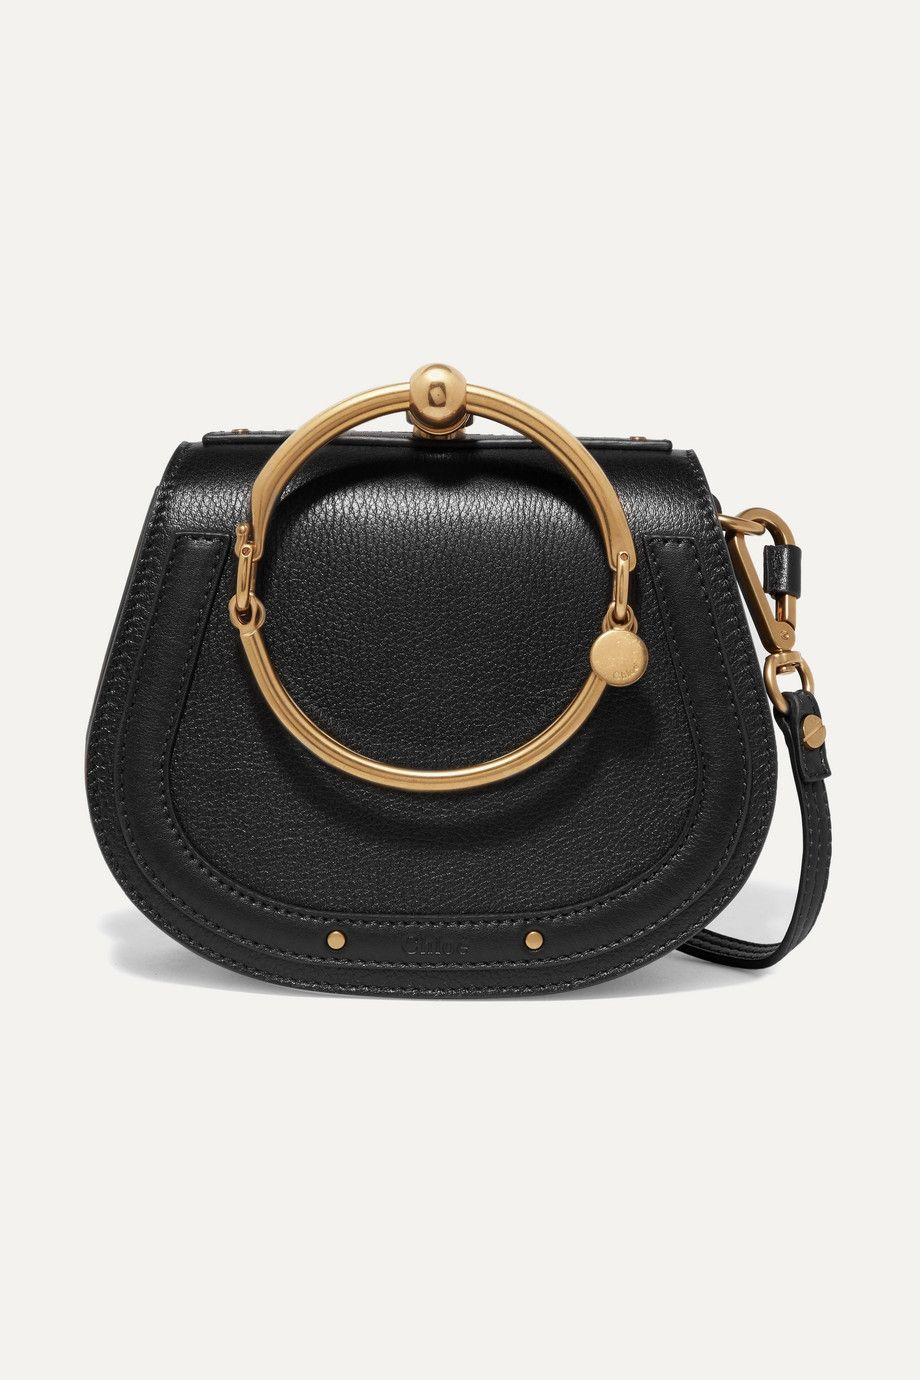 chloe-nile-bracelet-bag